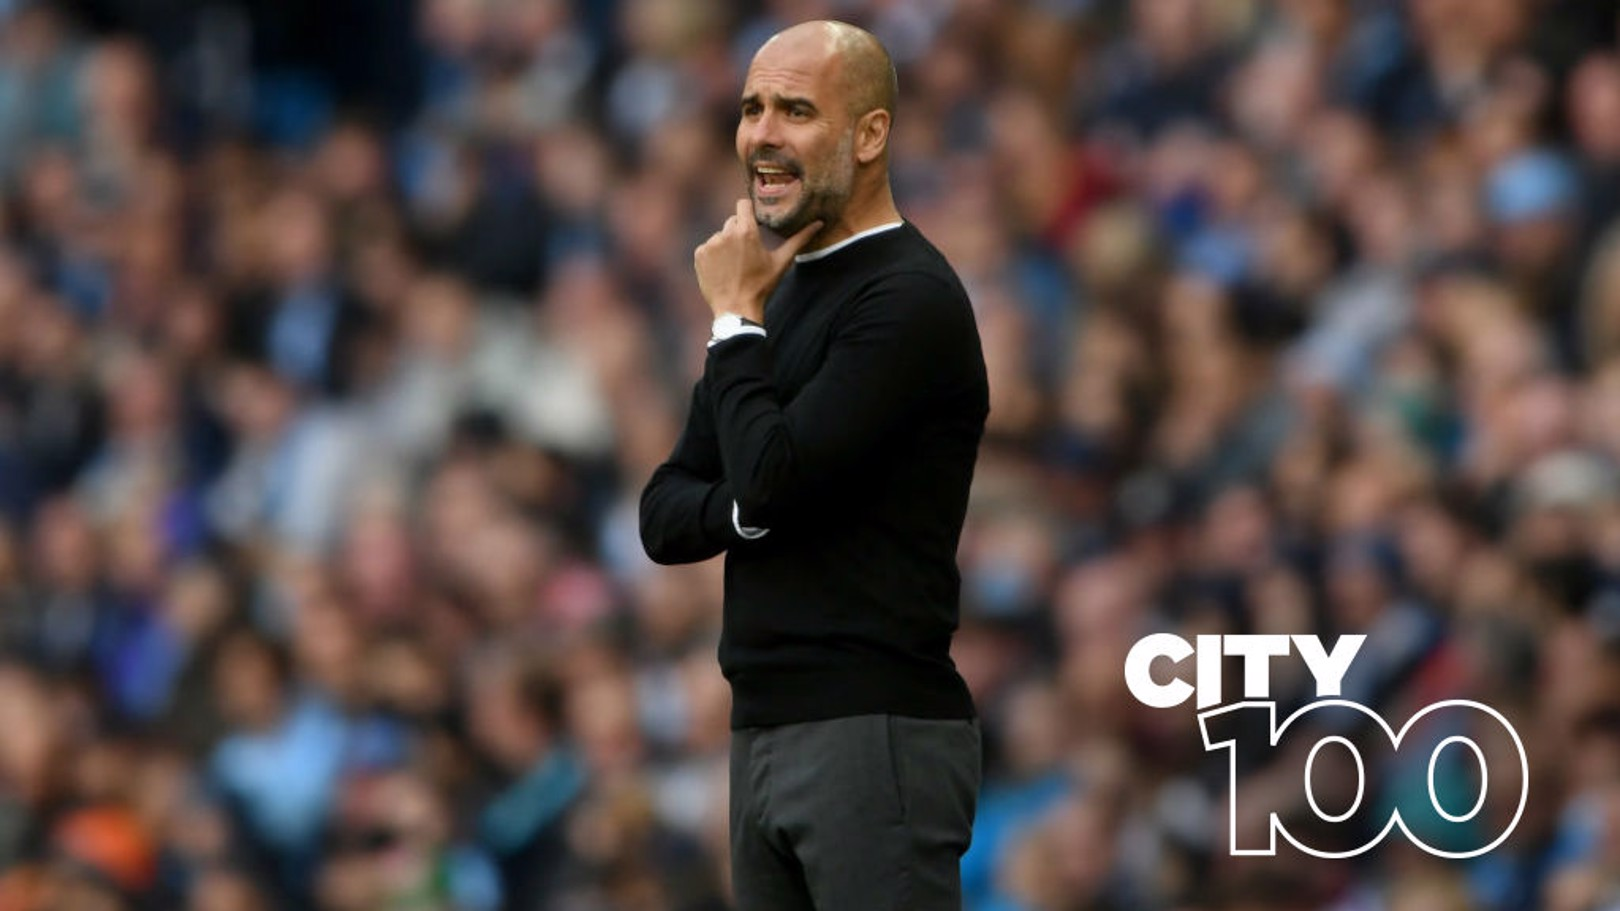 CITY 100: Pep Guardiola features heavily in today's instalment